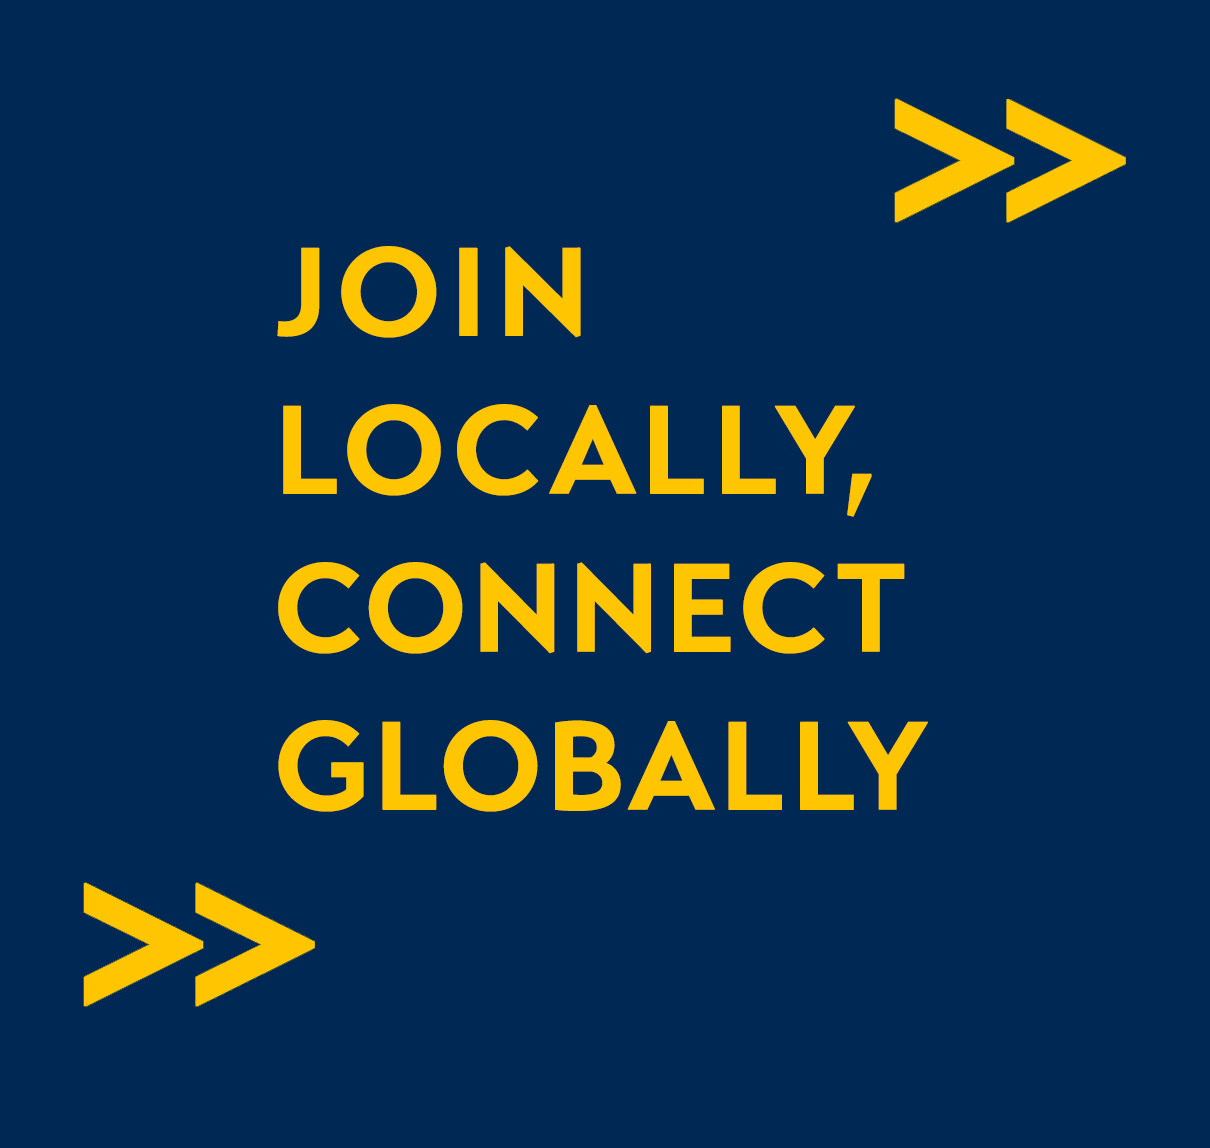 Join Locally, Connect Globally